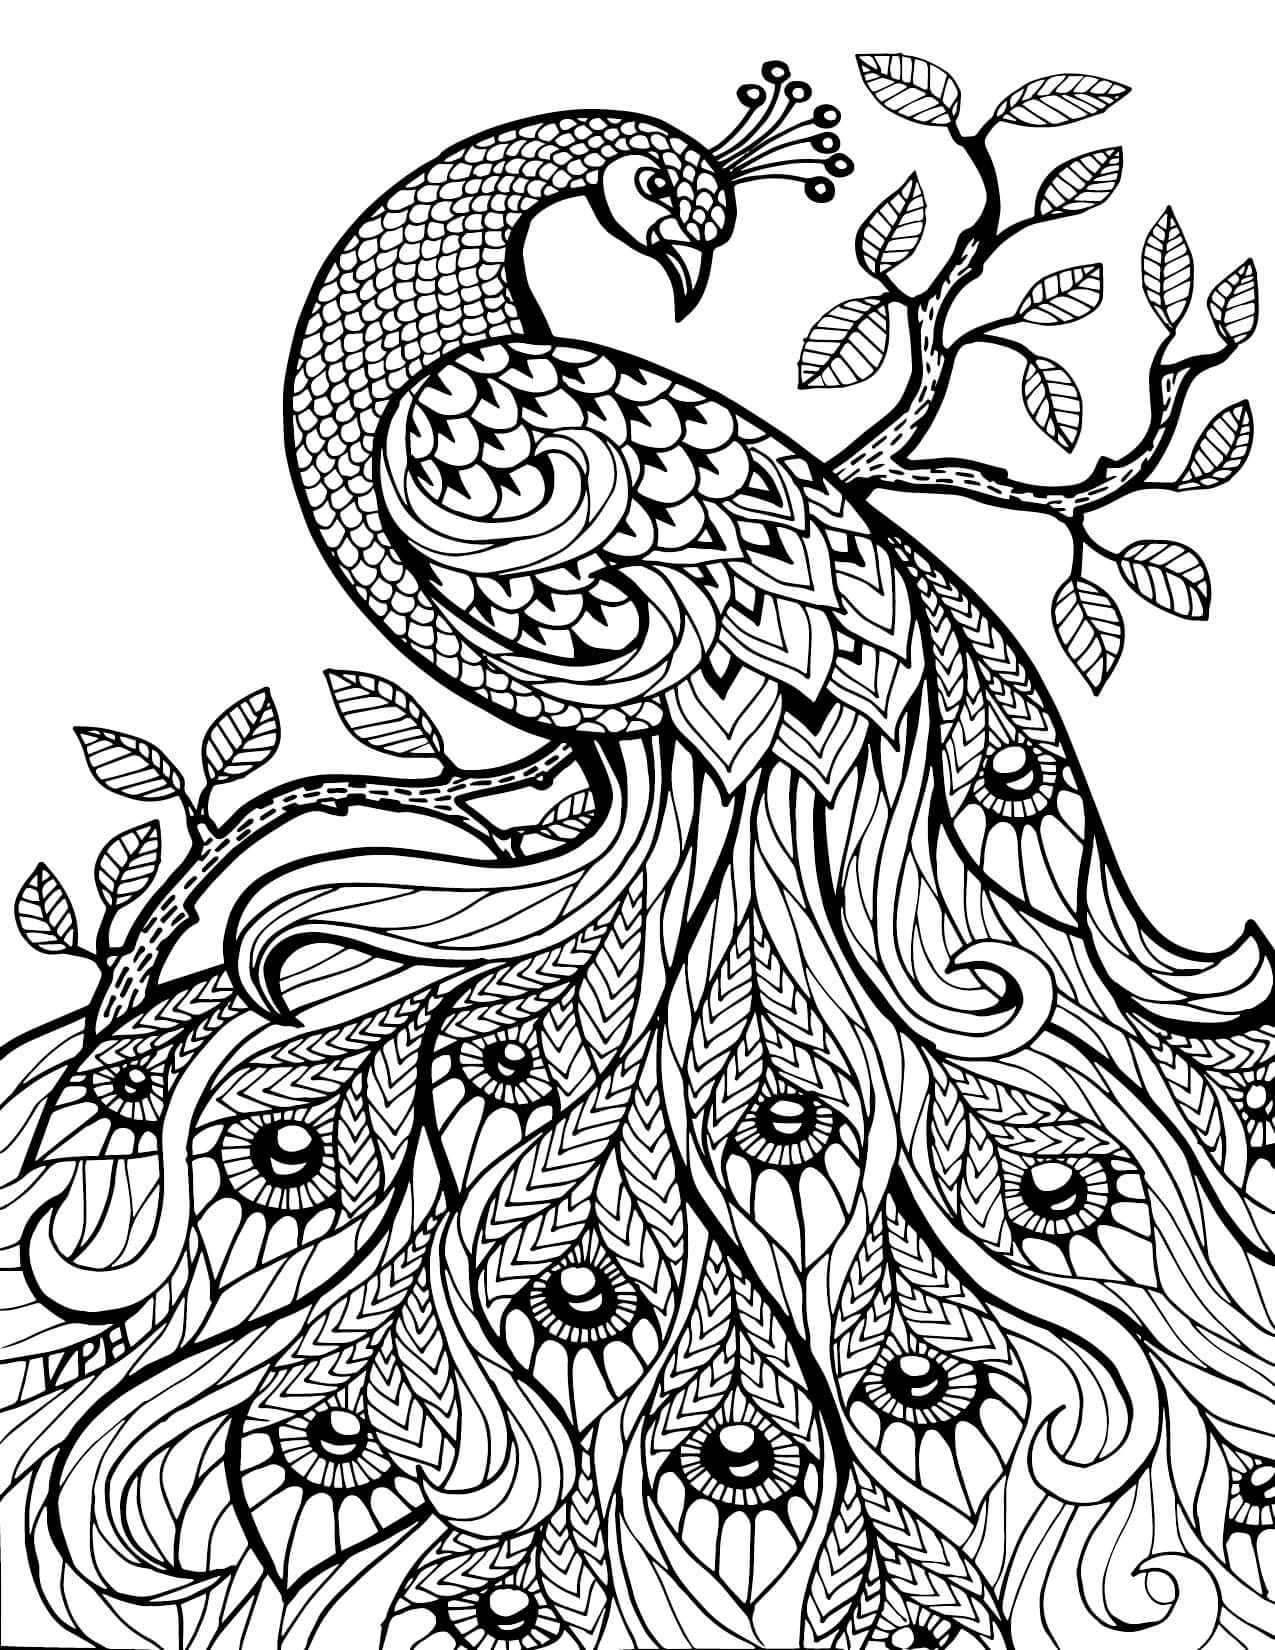 free printable coloring pages for adults and kids coloring pages for adults difficult animals 57 coloring for free coloring pages adults printable and kids